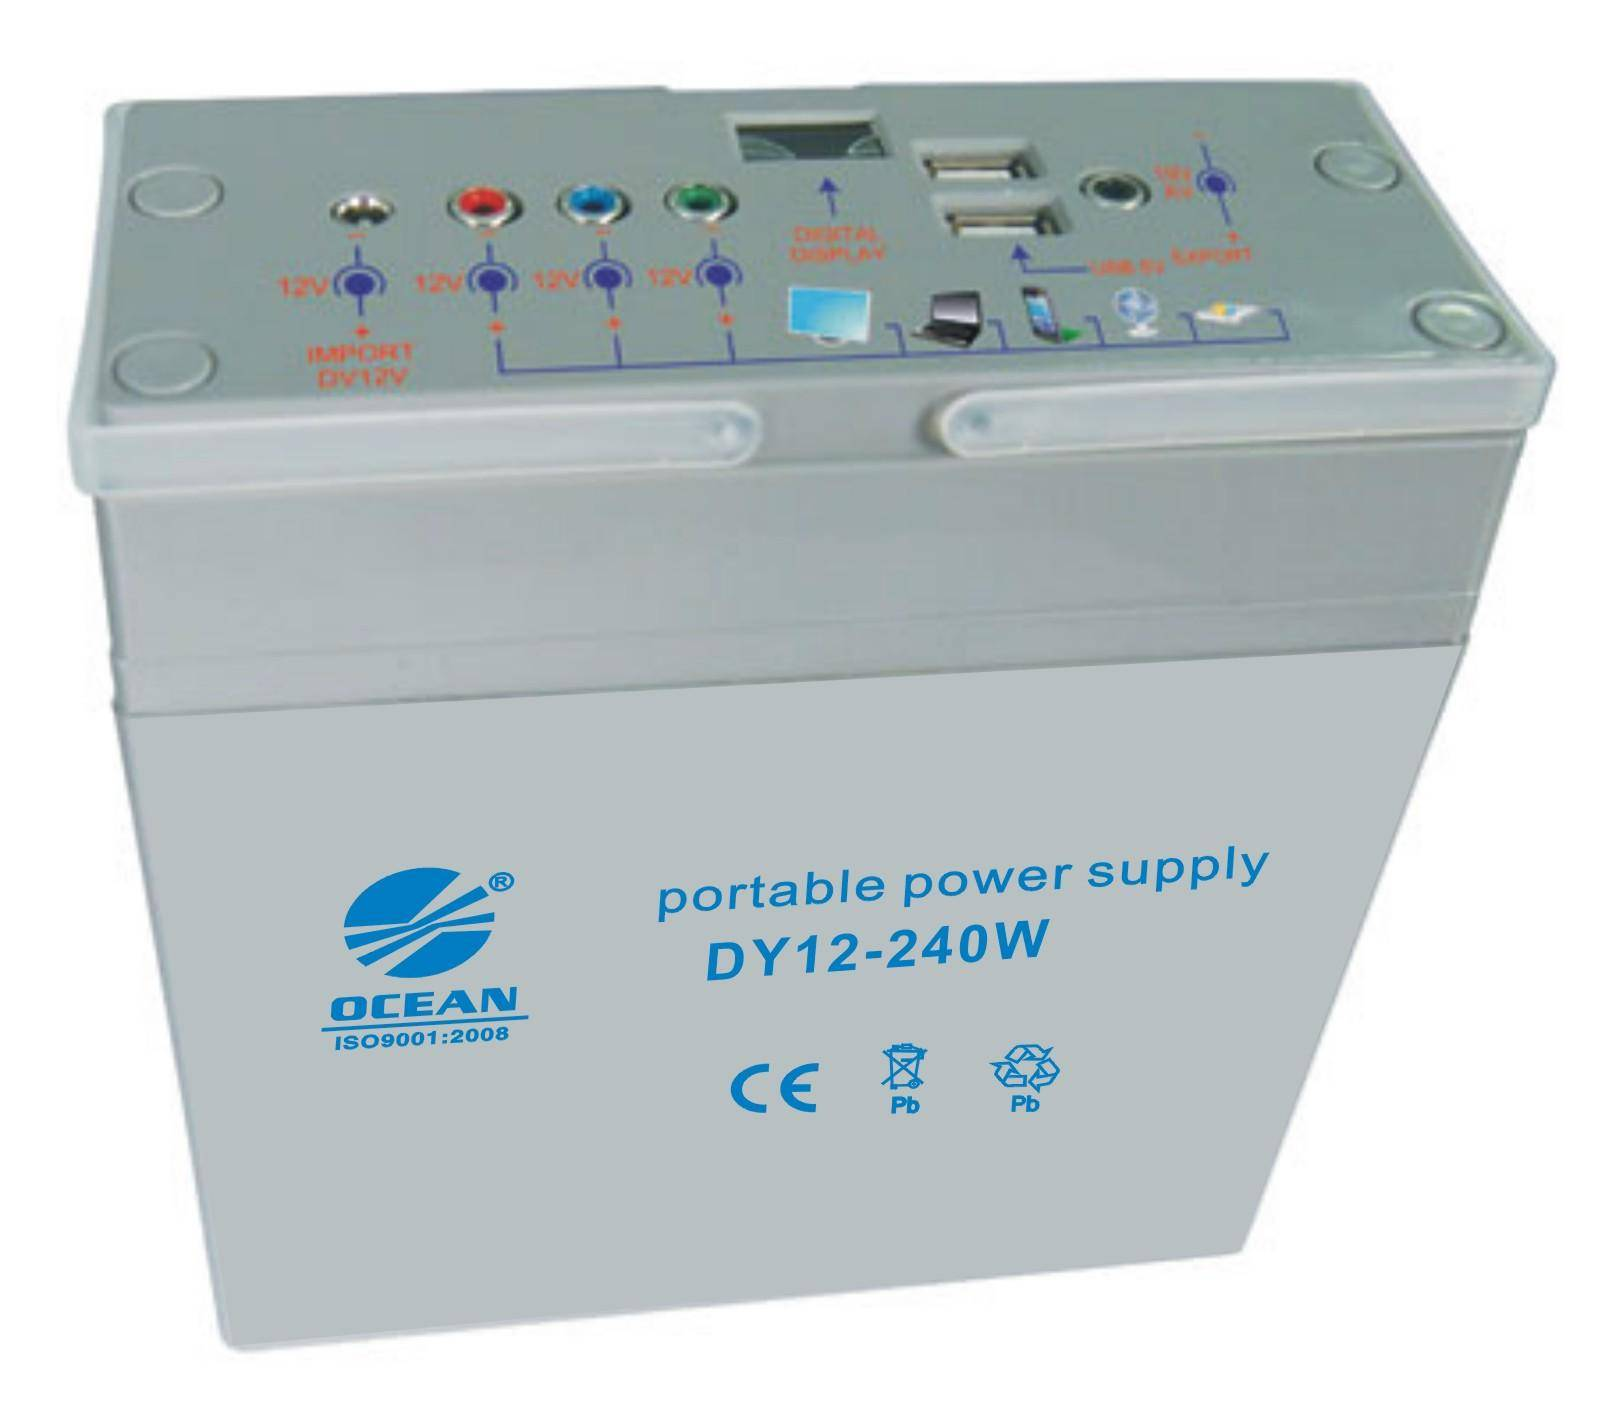 Solar power supply - DC 12V/240W